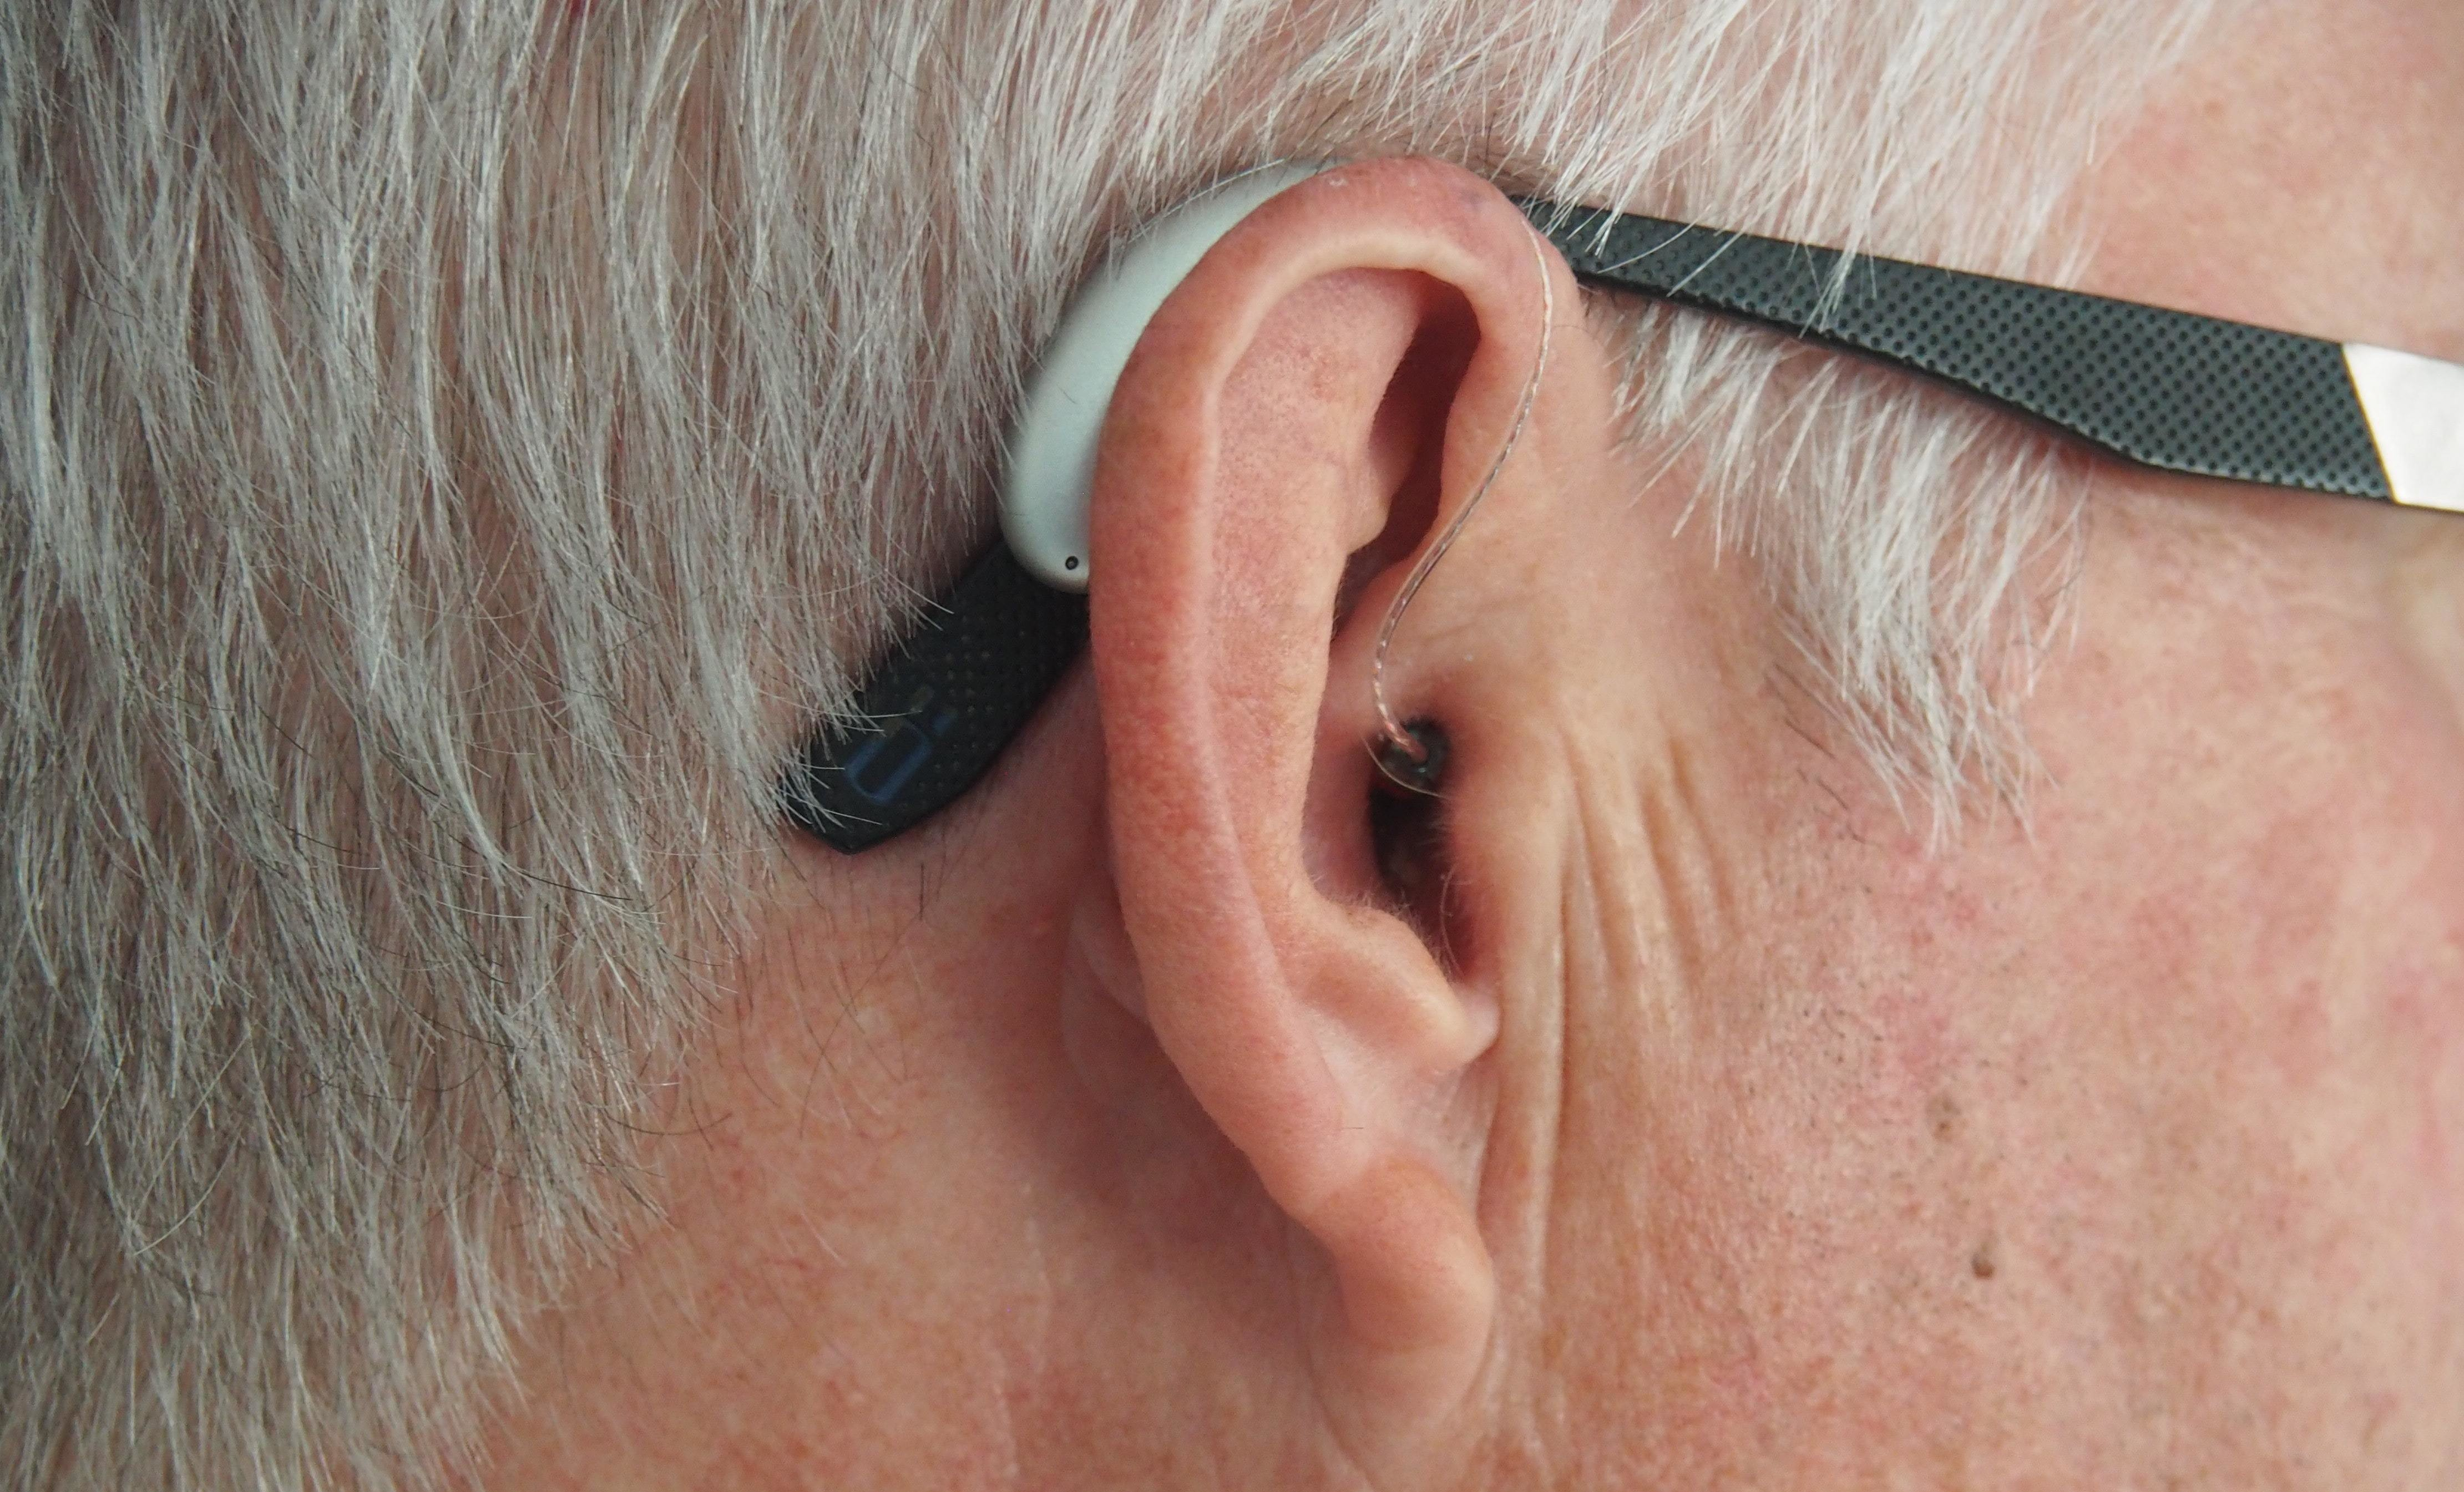 a picture of a hearing aid in a man's ear